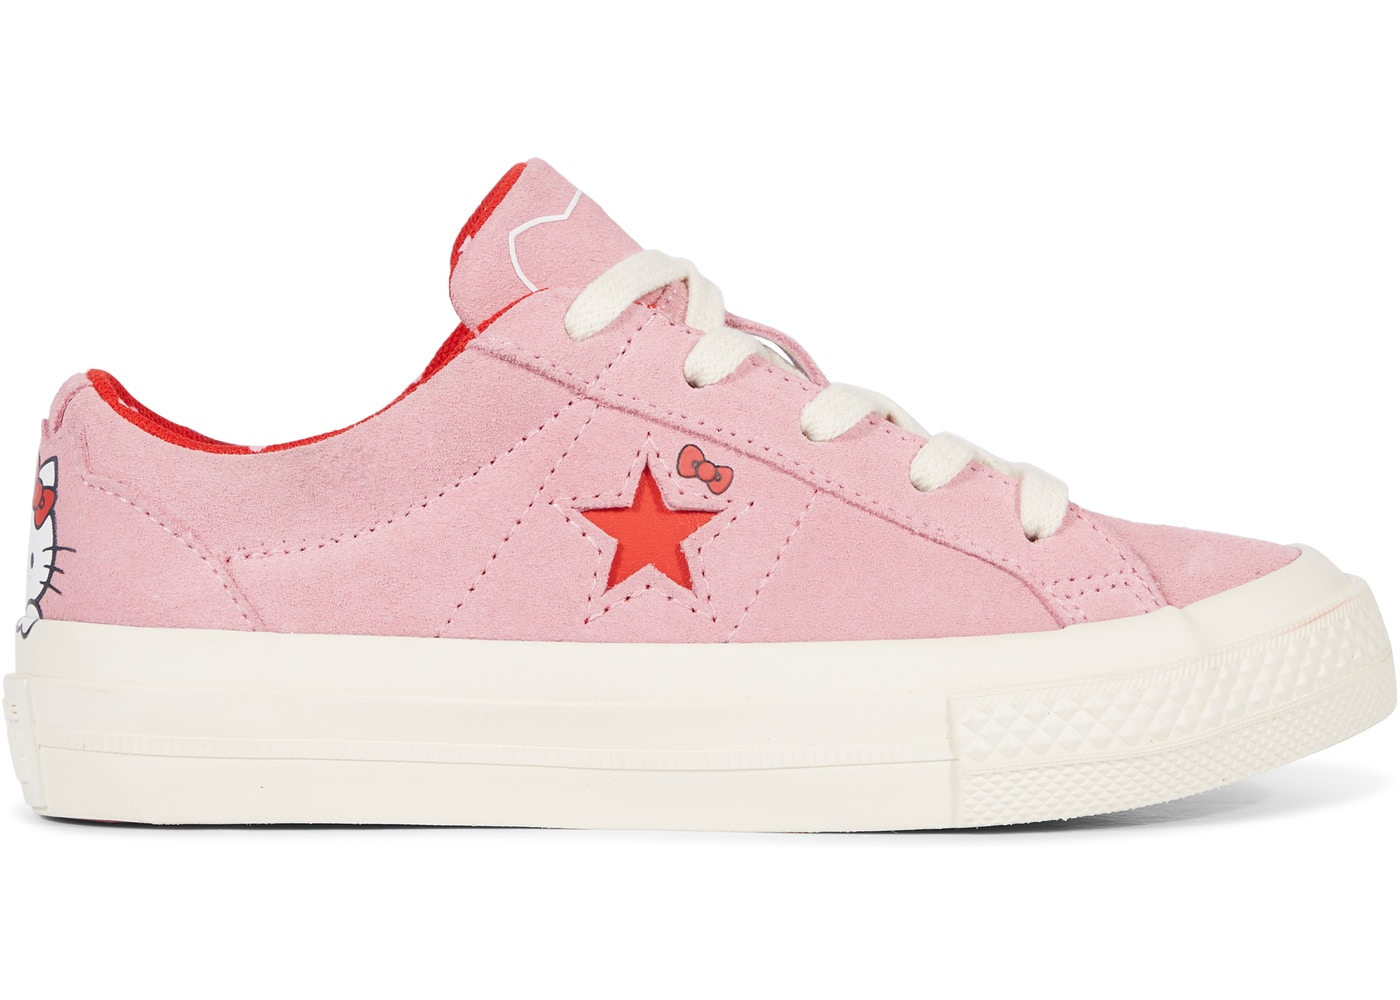 Converse One Star Ox Hello Kitty Pink (GS) - 362941C c19ffad3bd018